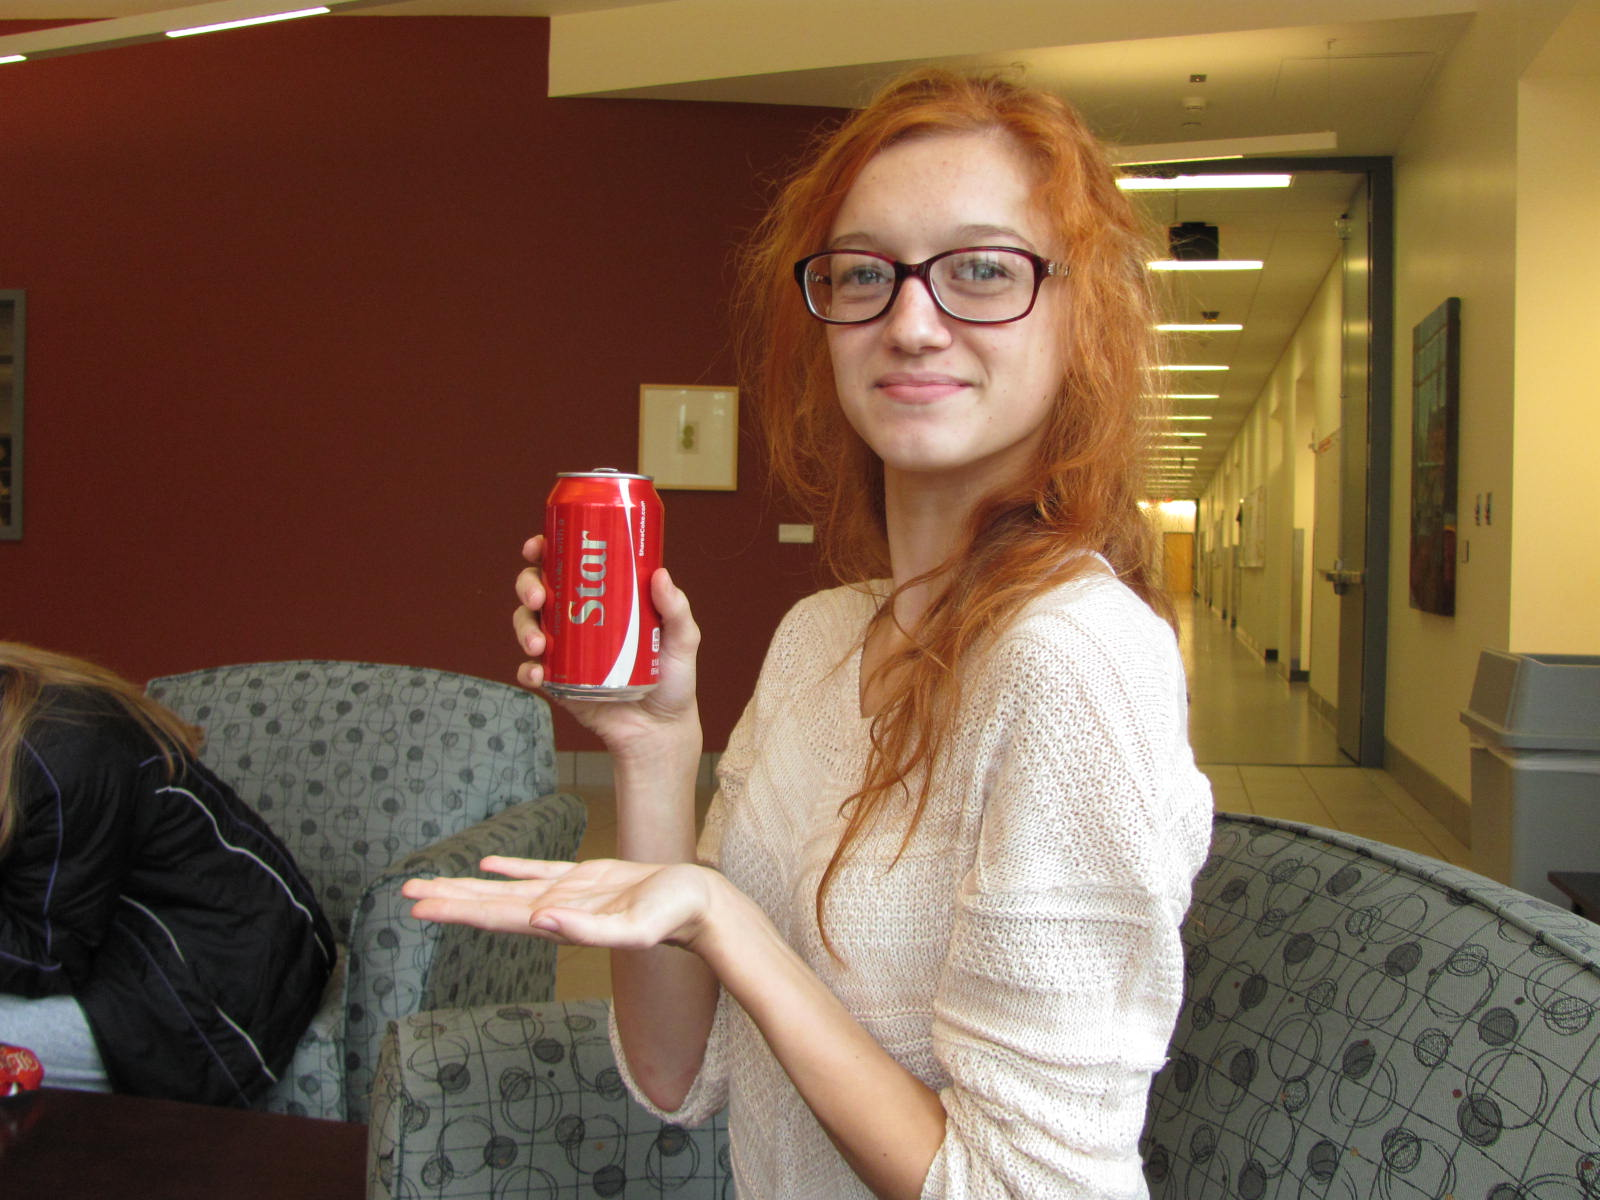 Have a Coke with a star physics student